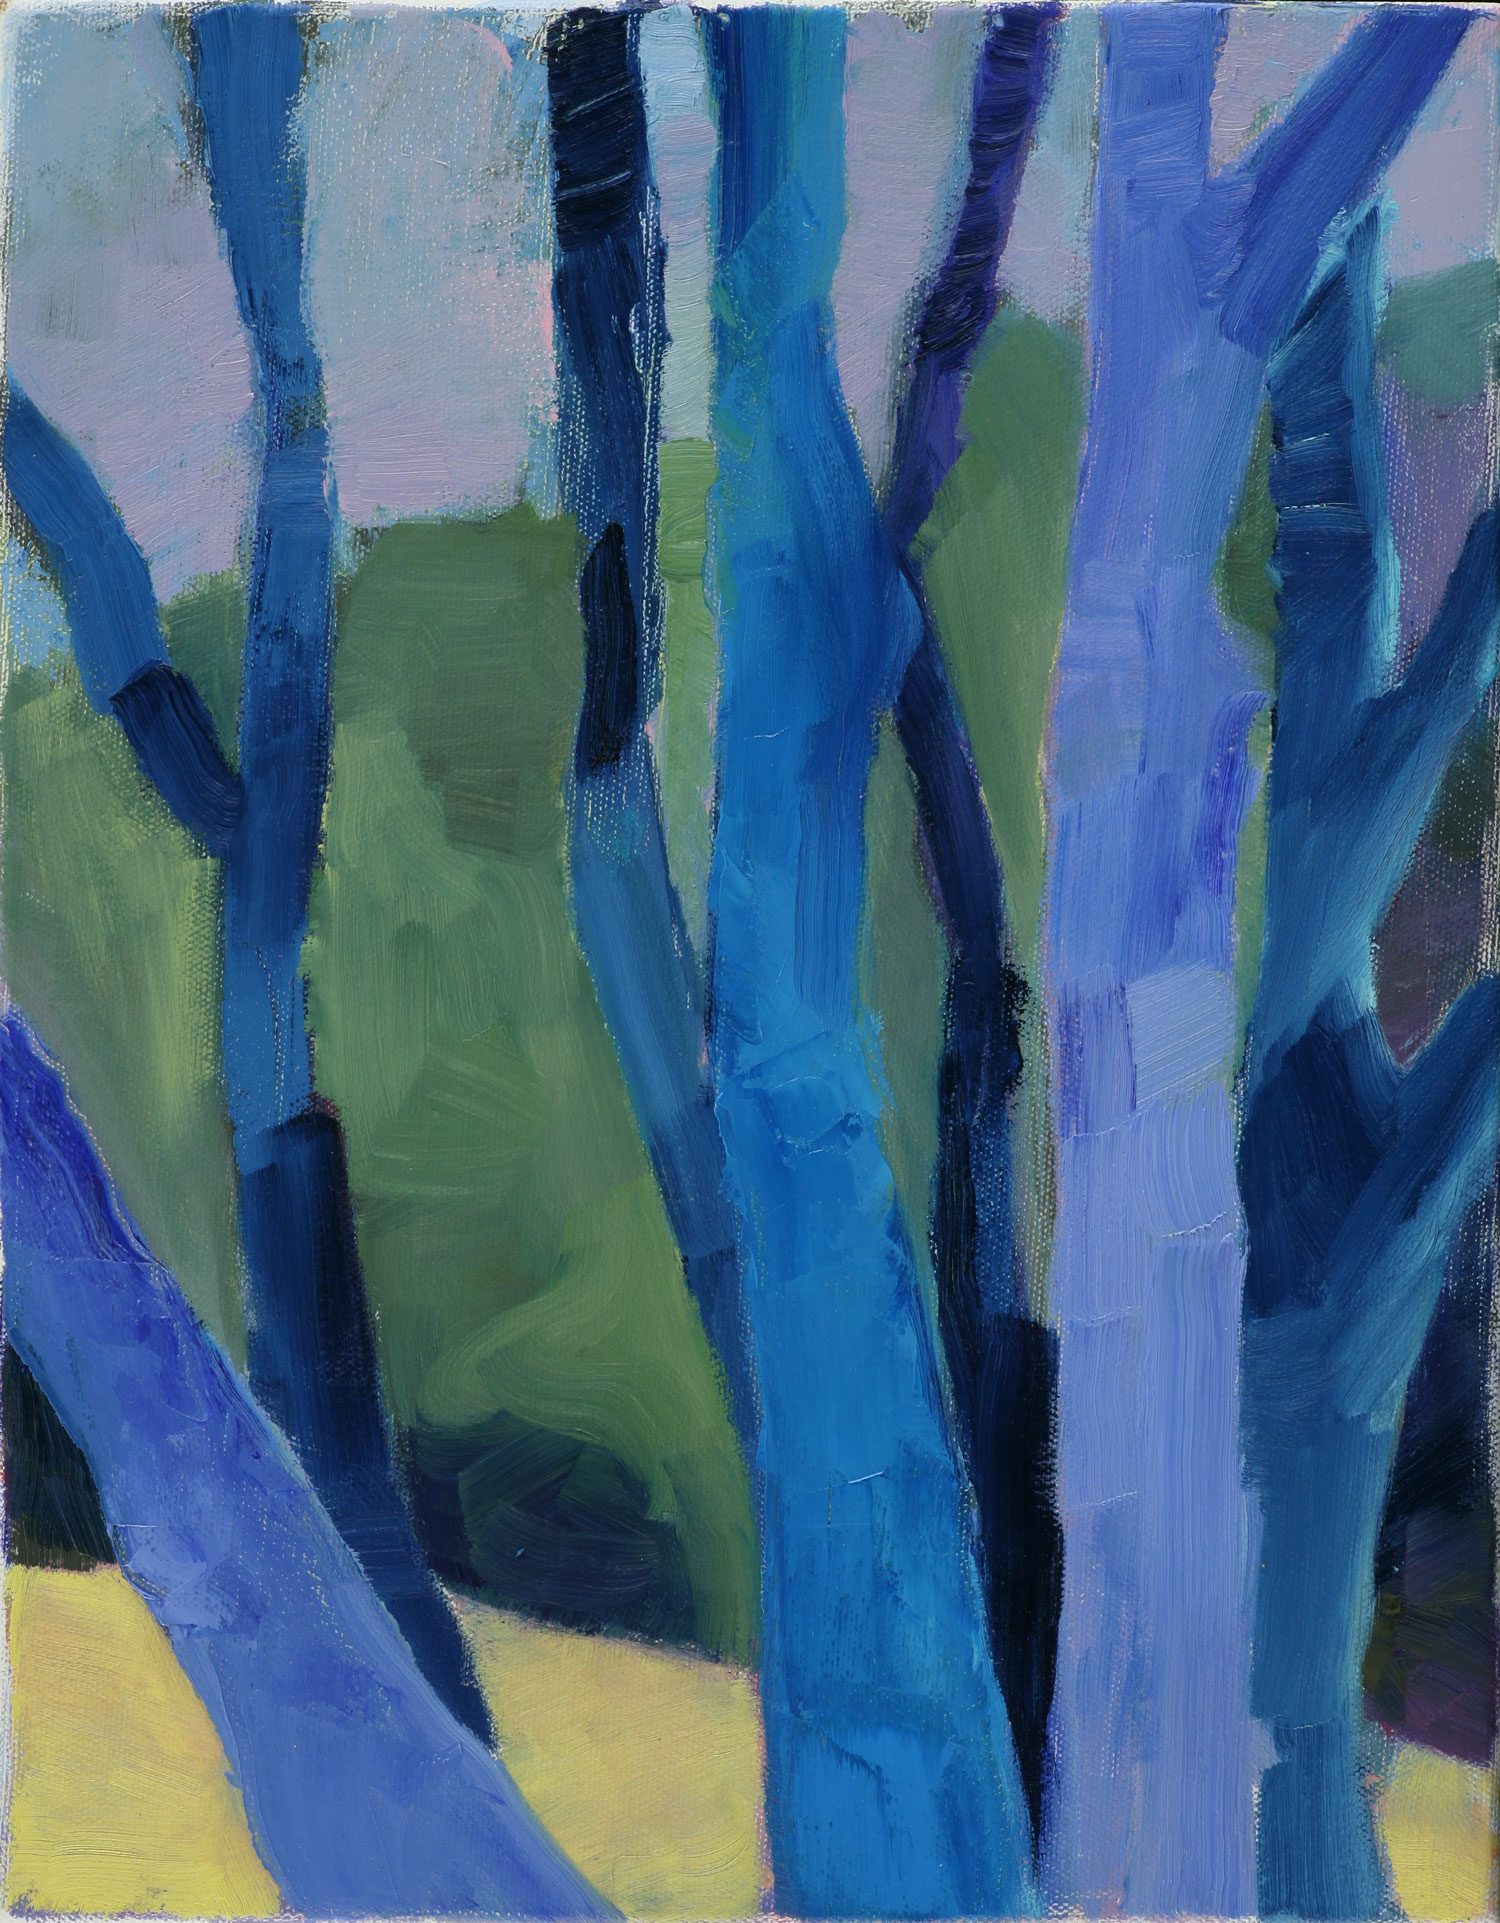 Blue Trees , 2009, oil on canvas, 11 x 14, SOLD